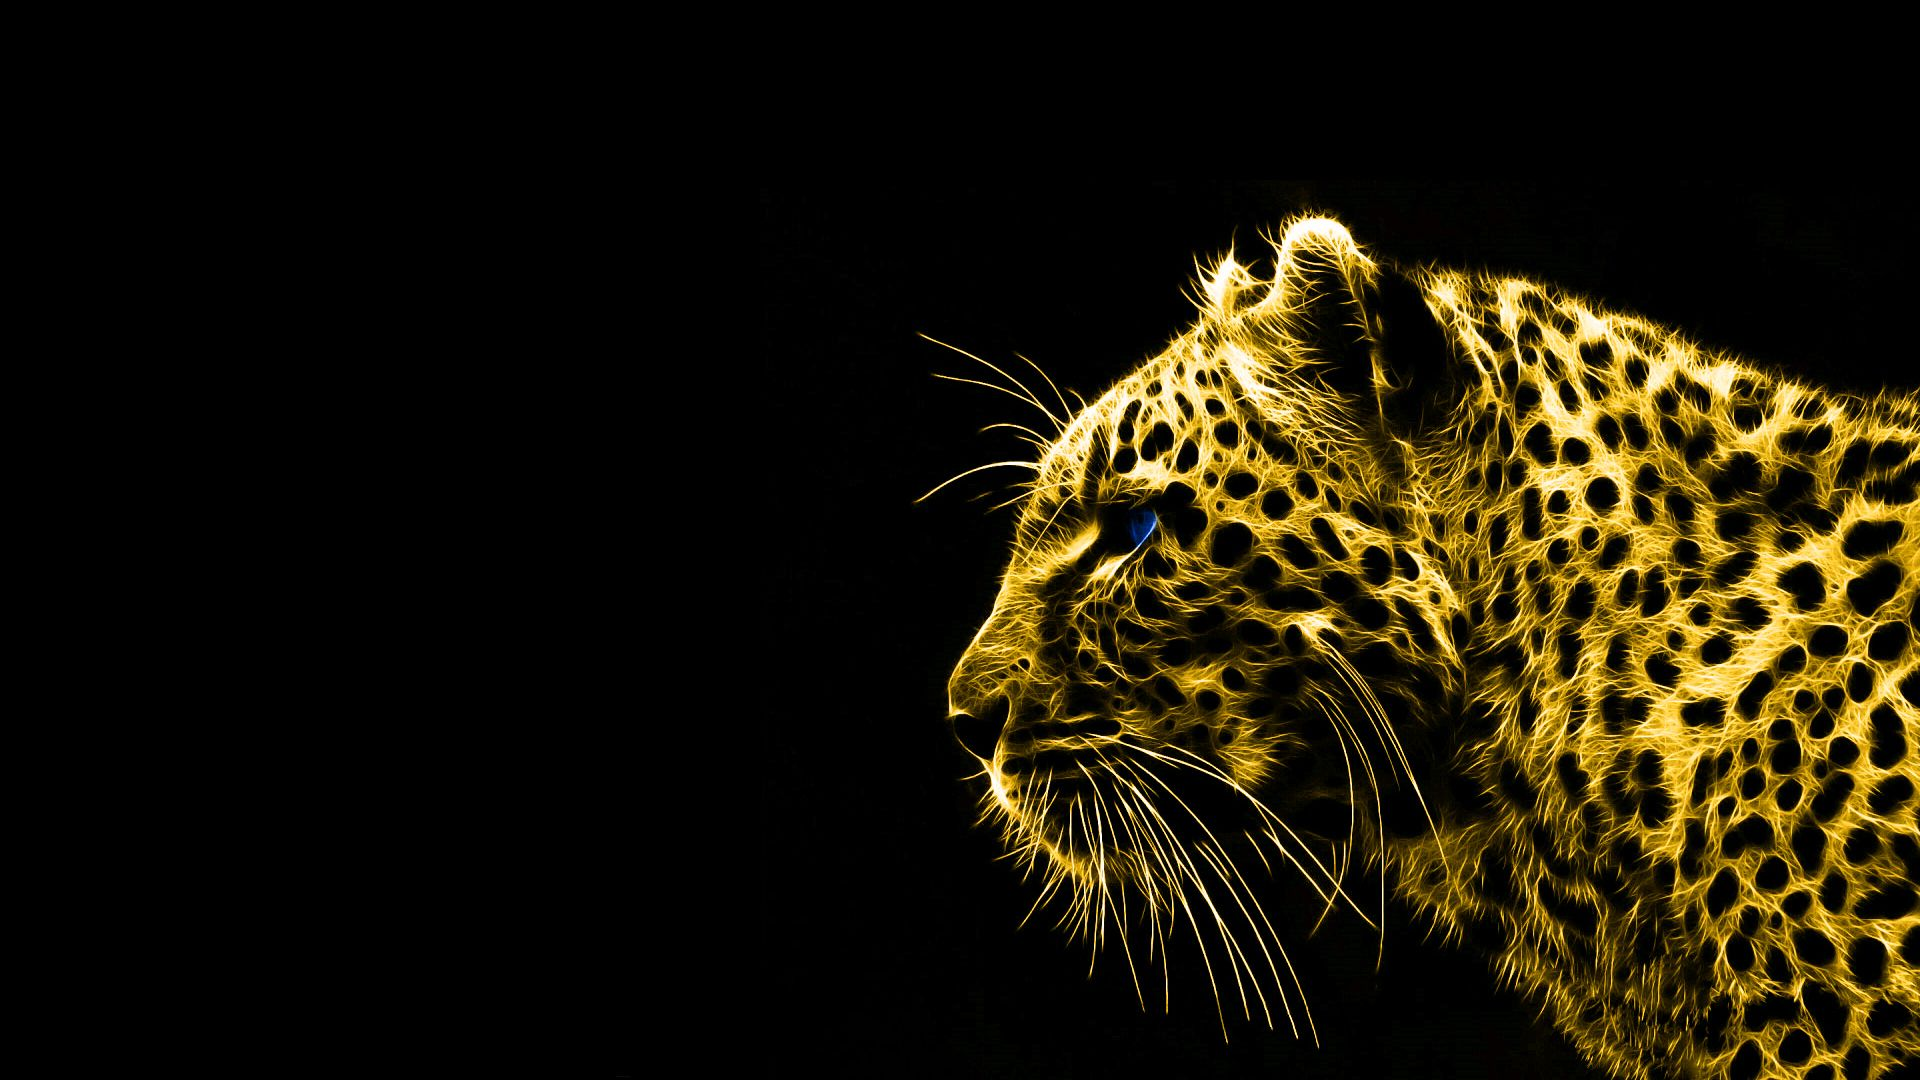 Pin By Naty Alarcon On Backgrounds Pinterest Leopard Wallpaper